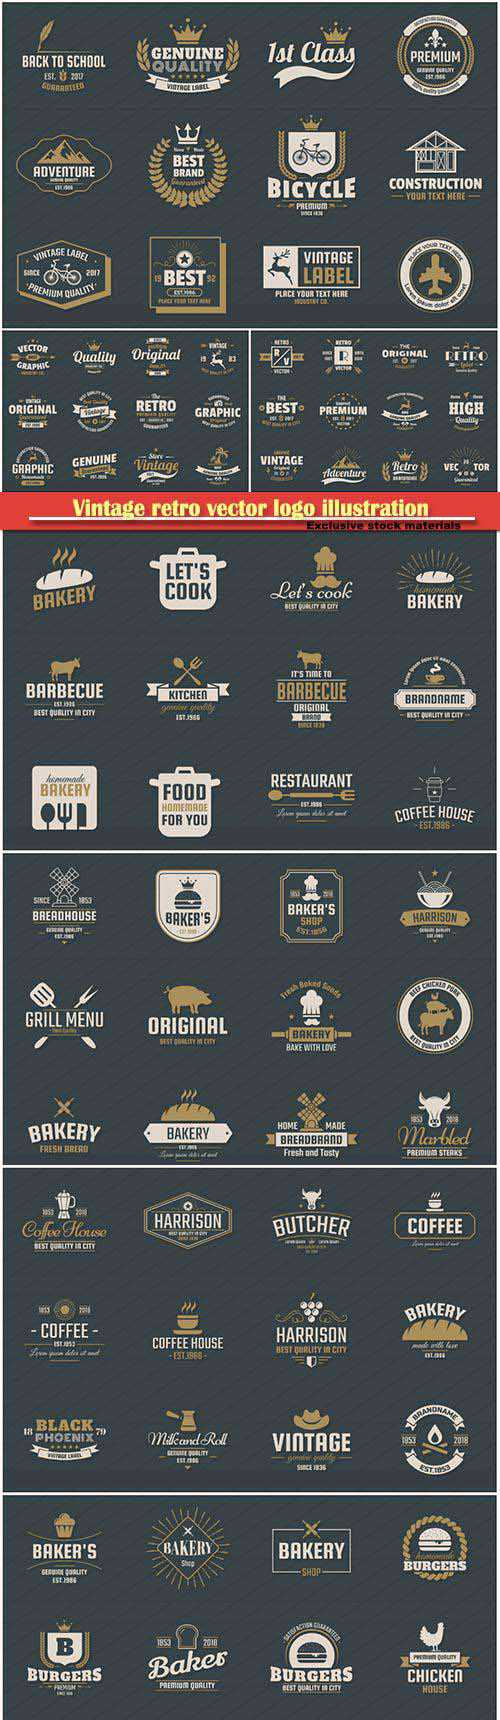 Vintage retro vector logo illustration for banner